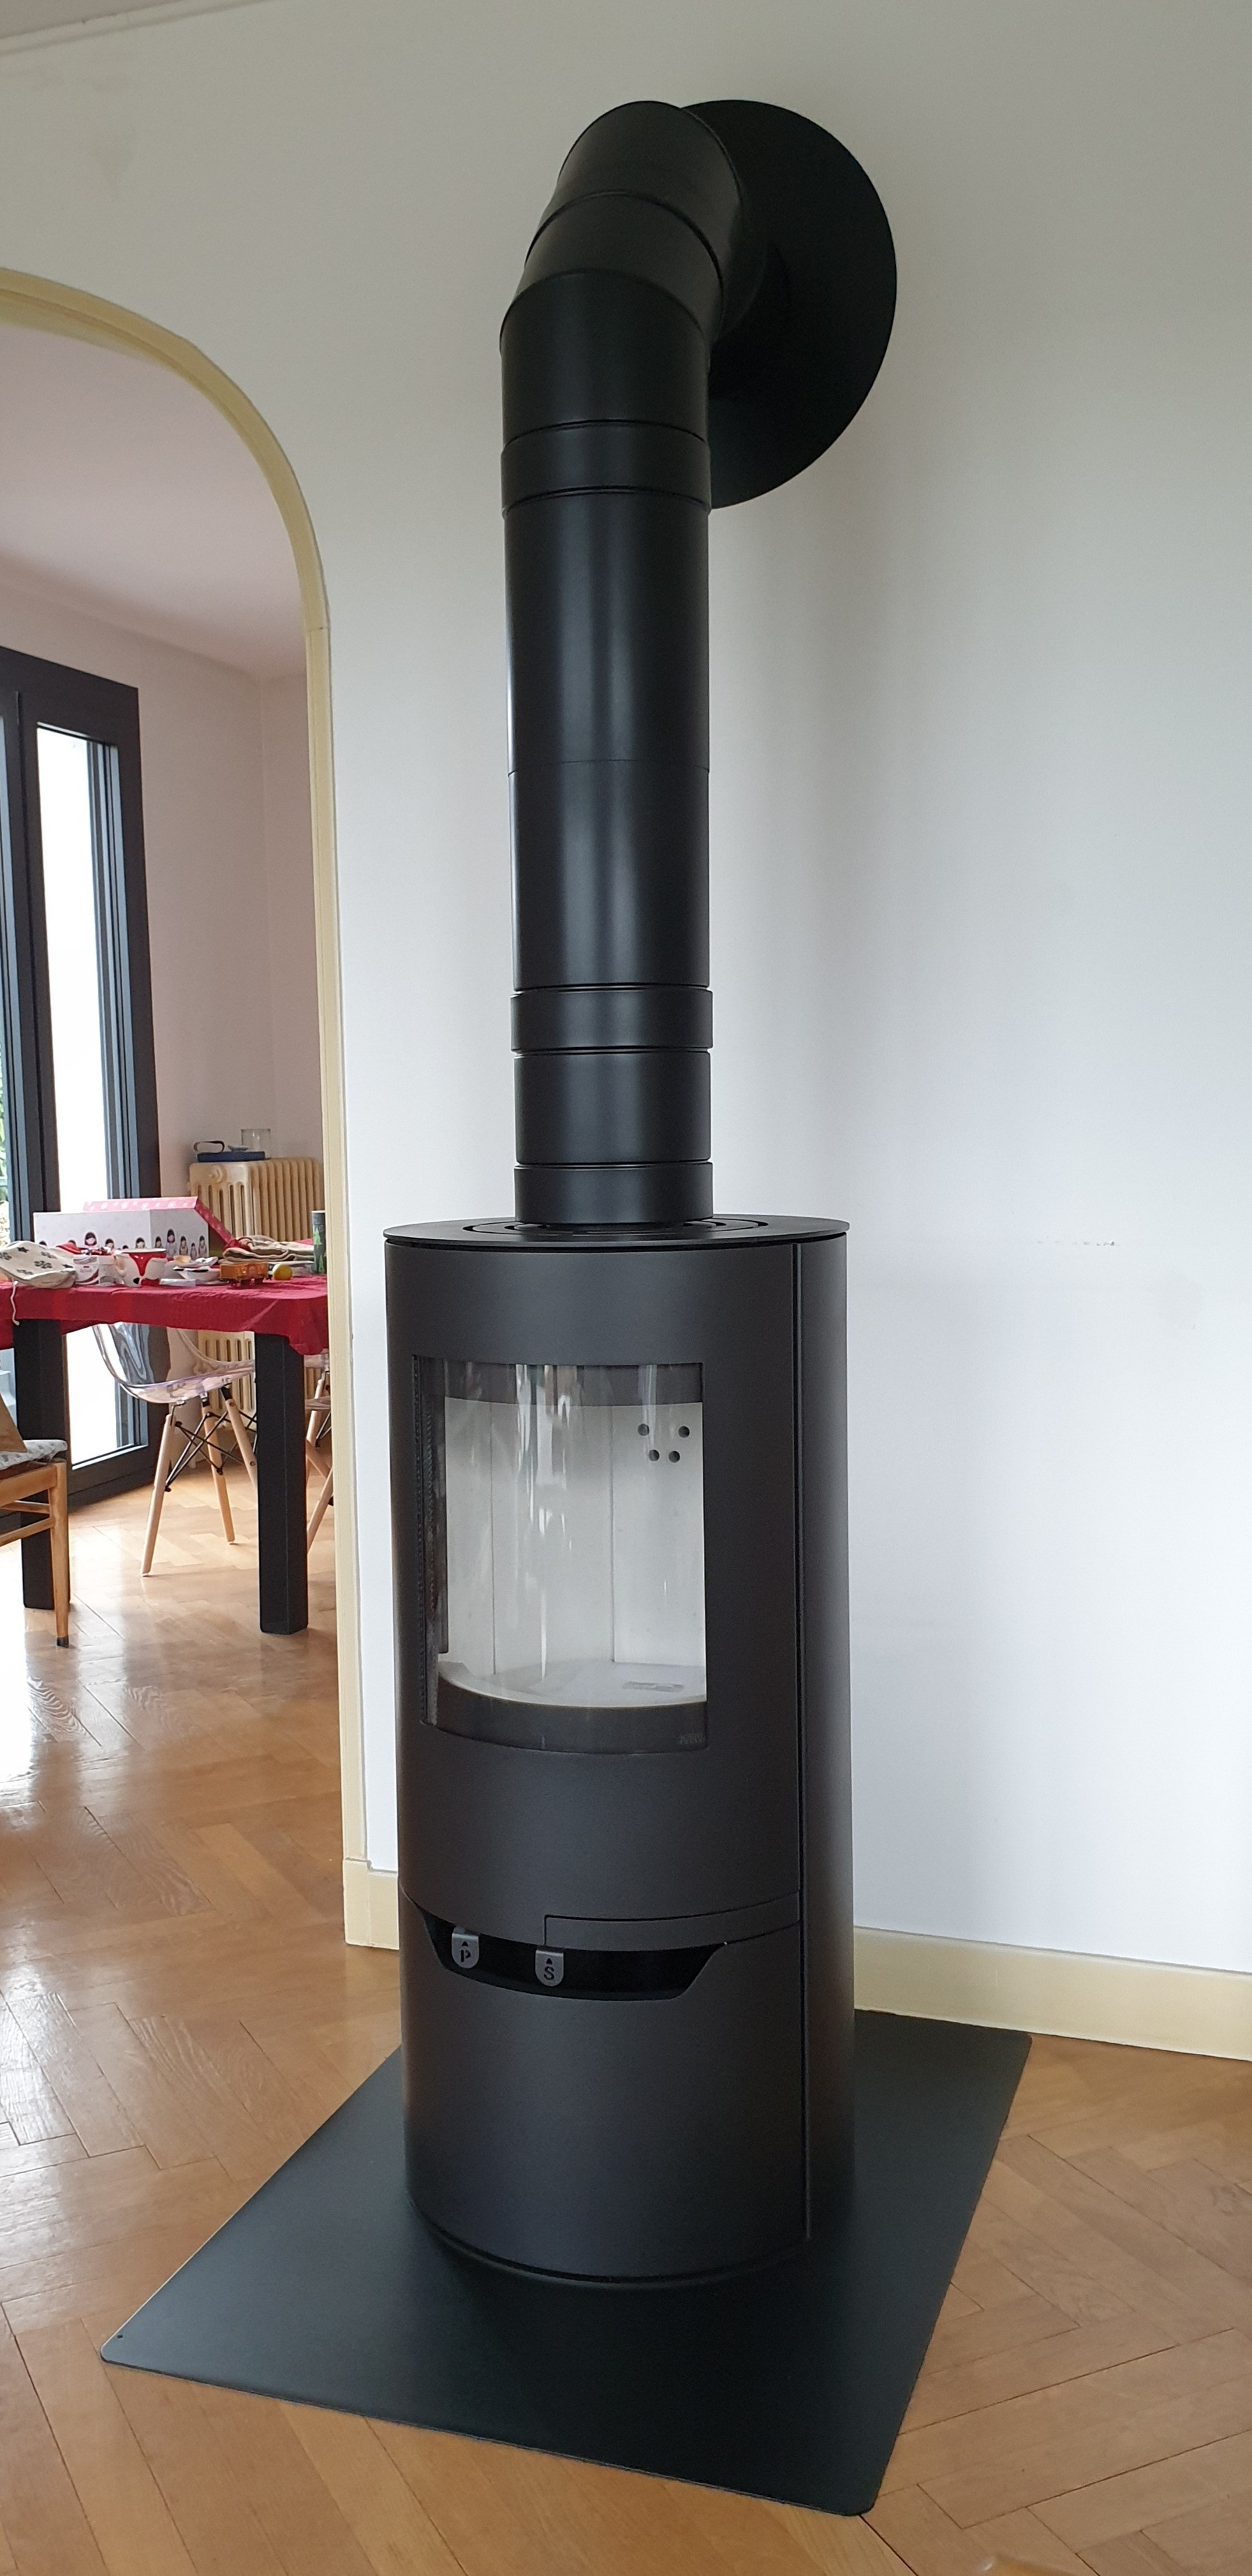 Interstoves ISF 6kW, conduit isolé MODINOX PTR30 150mm